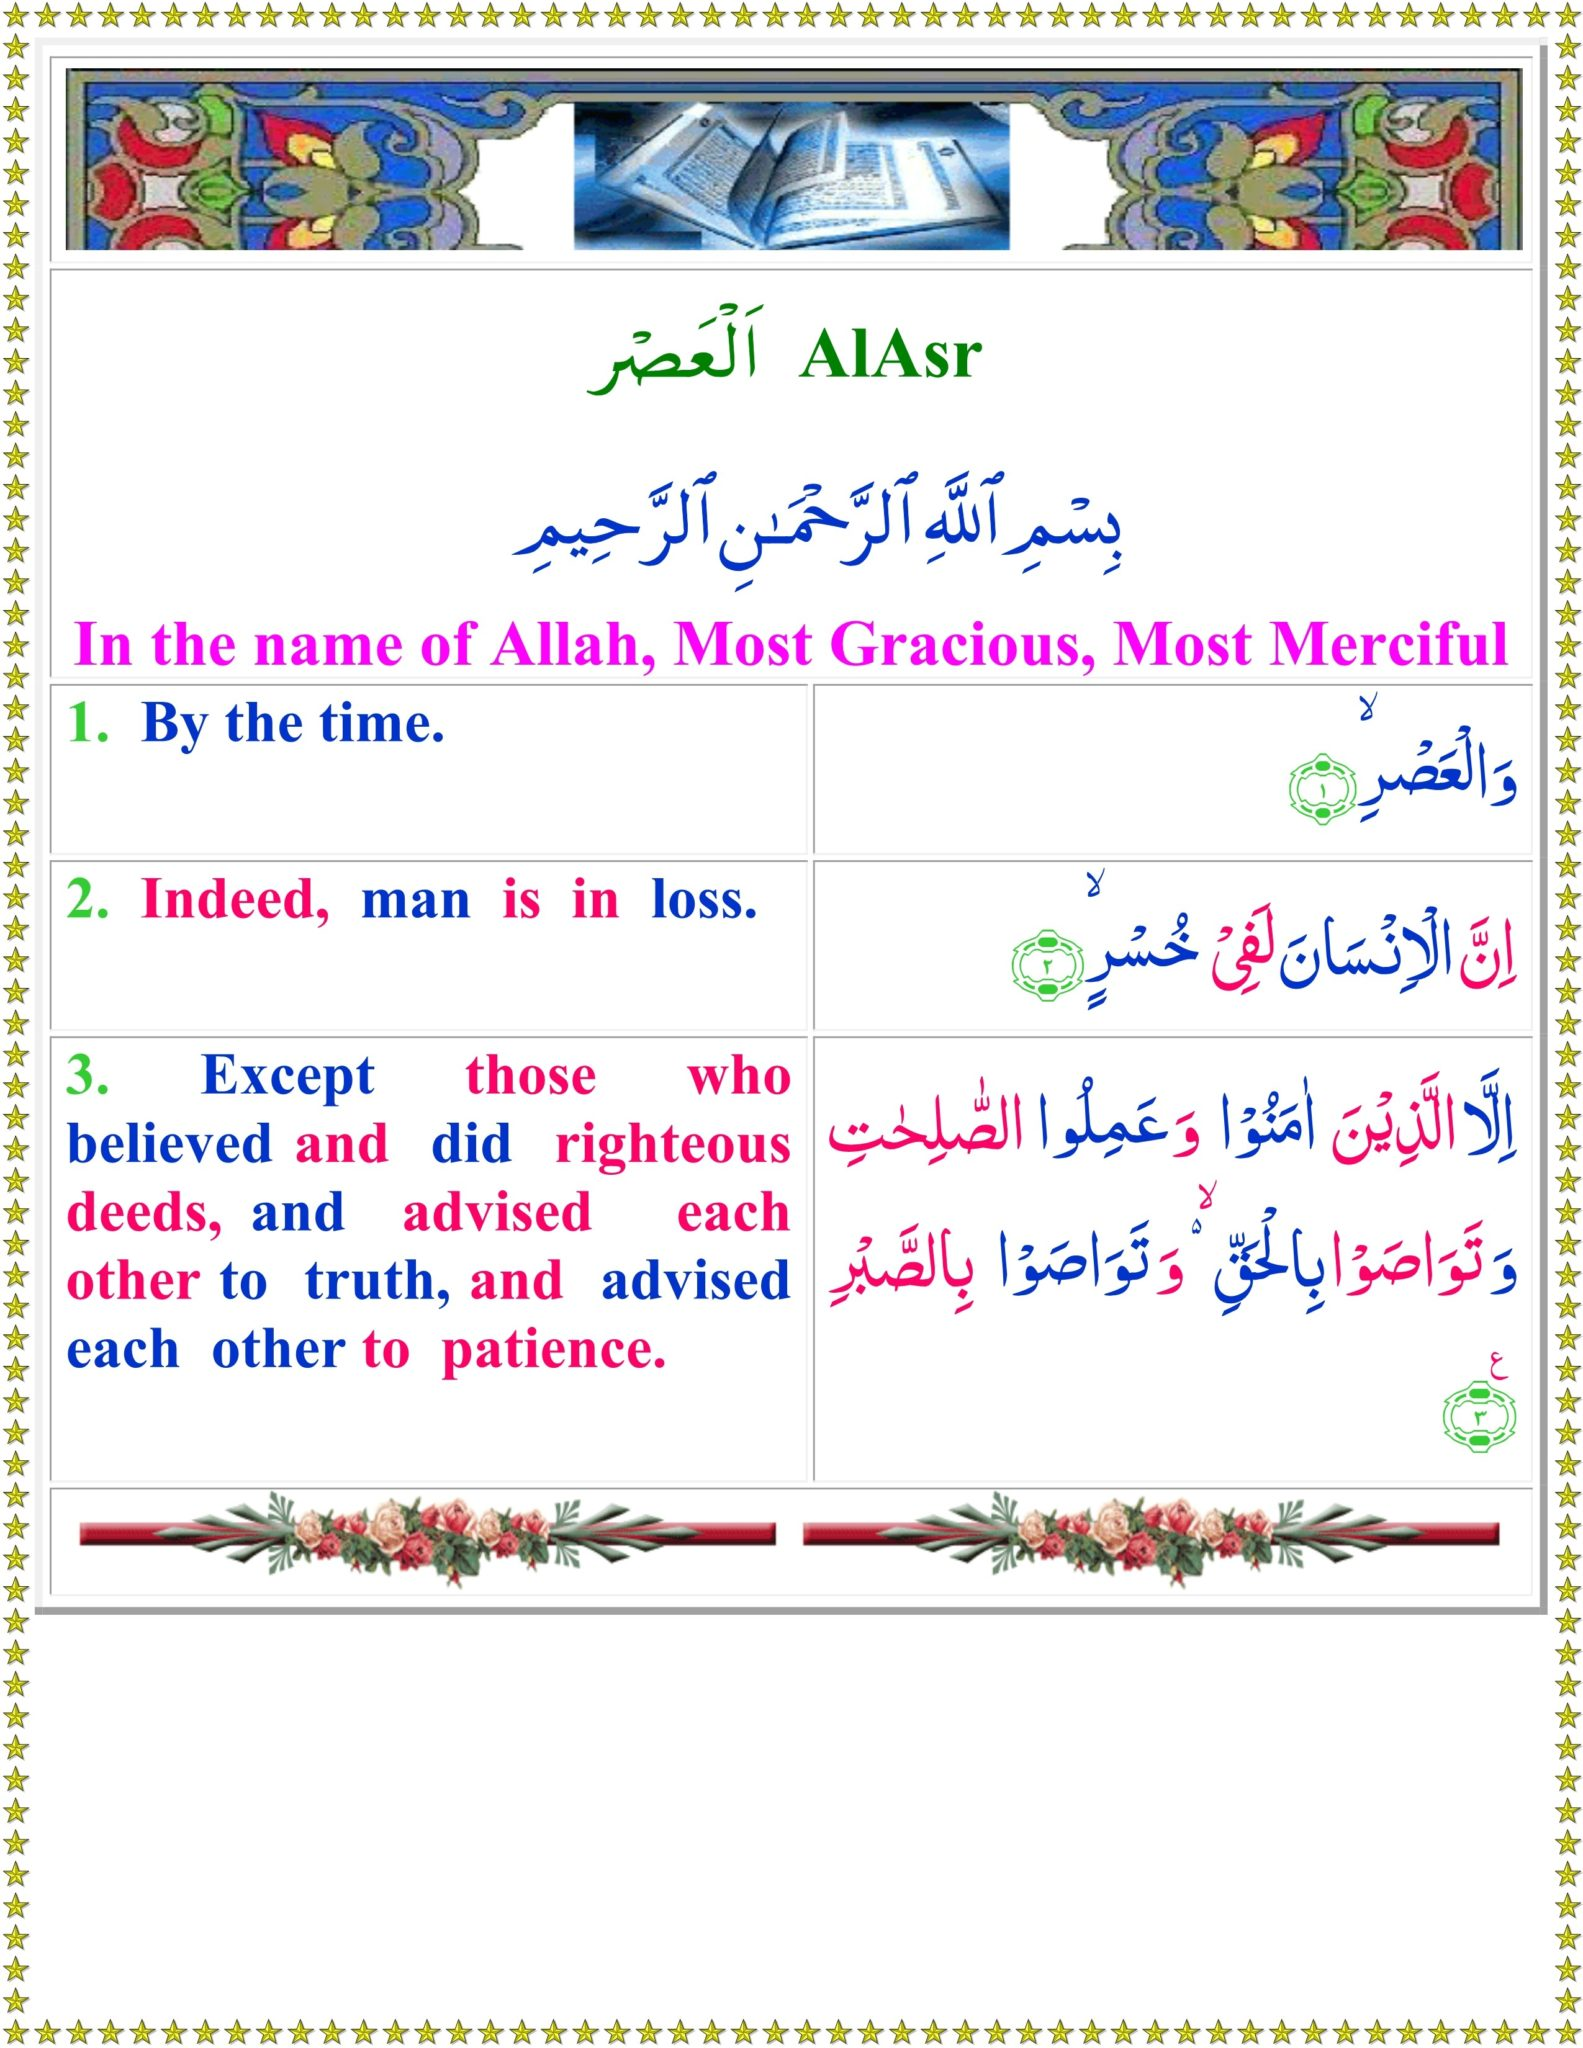 Surah Asr translation in English